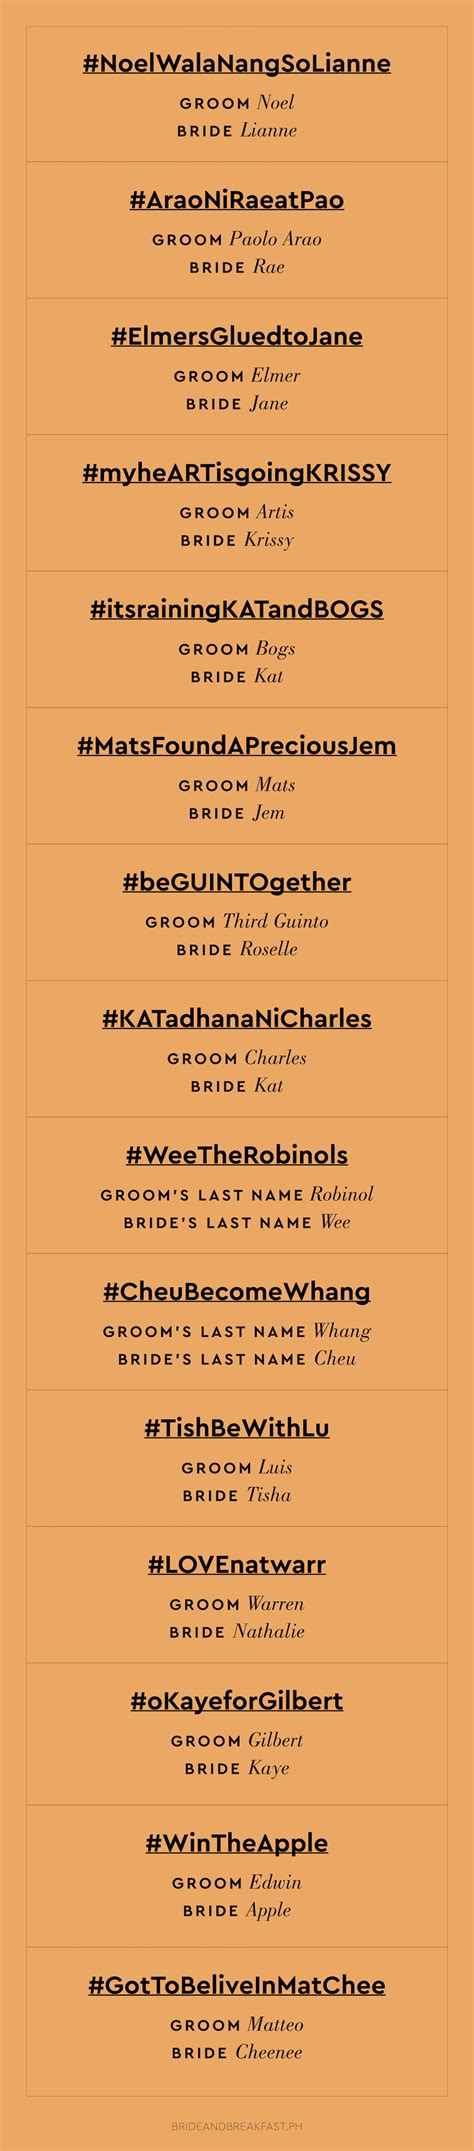 wedding hashtags more punny wedding hashtags philippines wedding